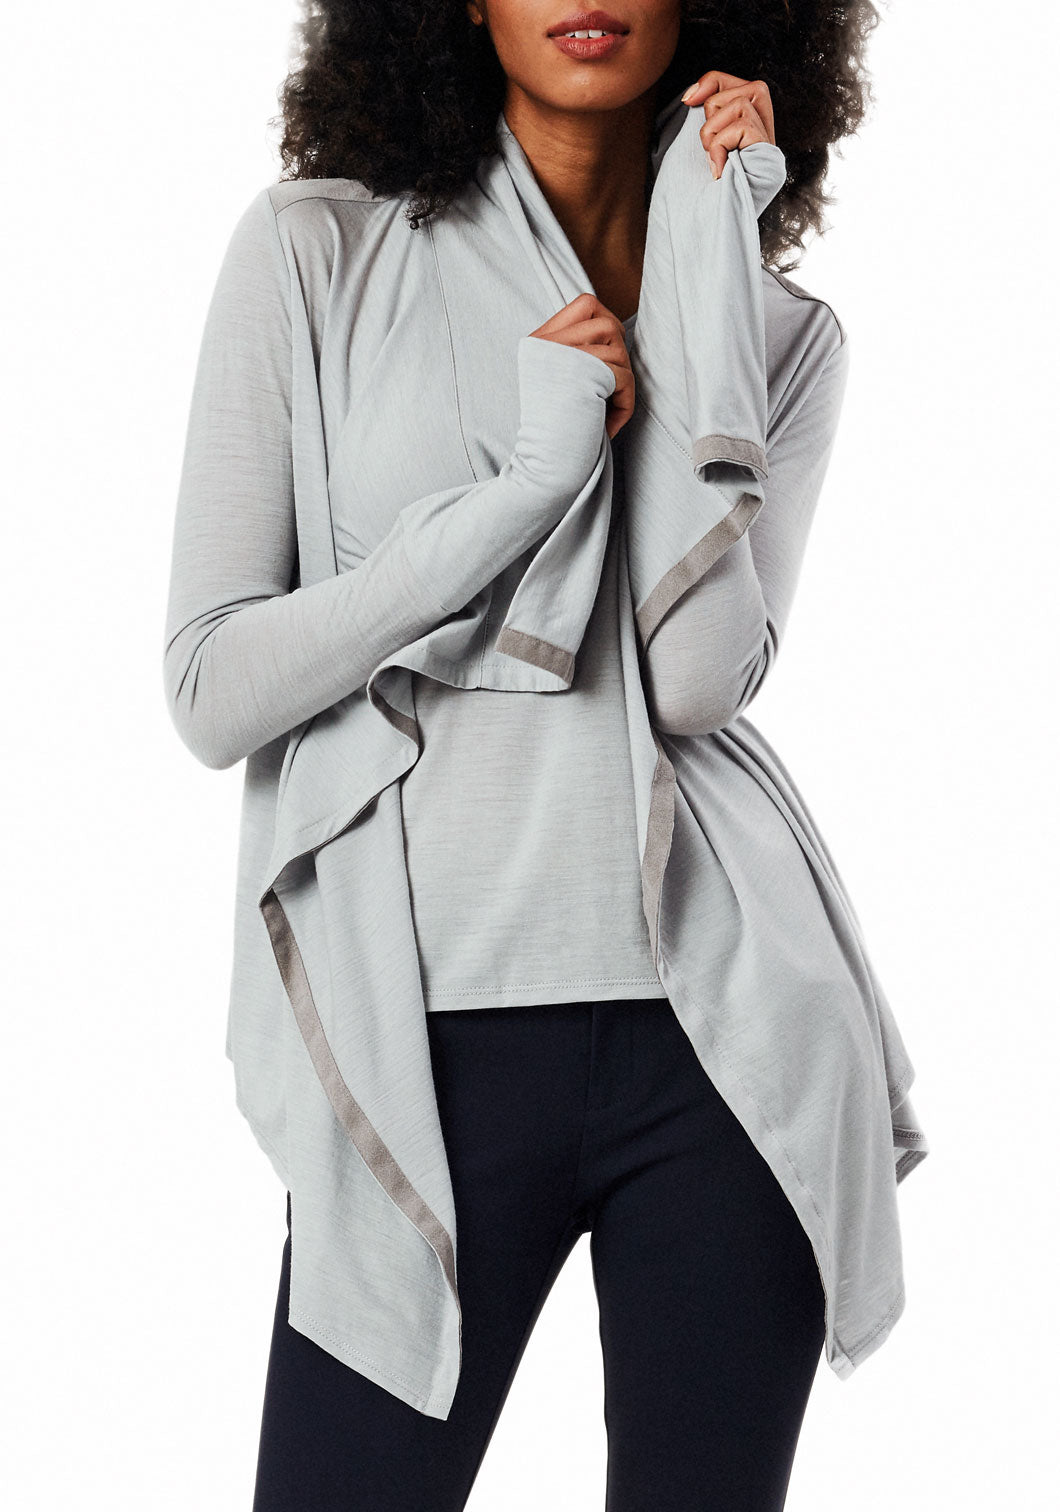 Bravi Pants & Good-to-Go Cardi Combo Pack